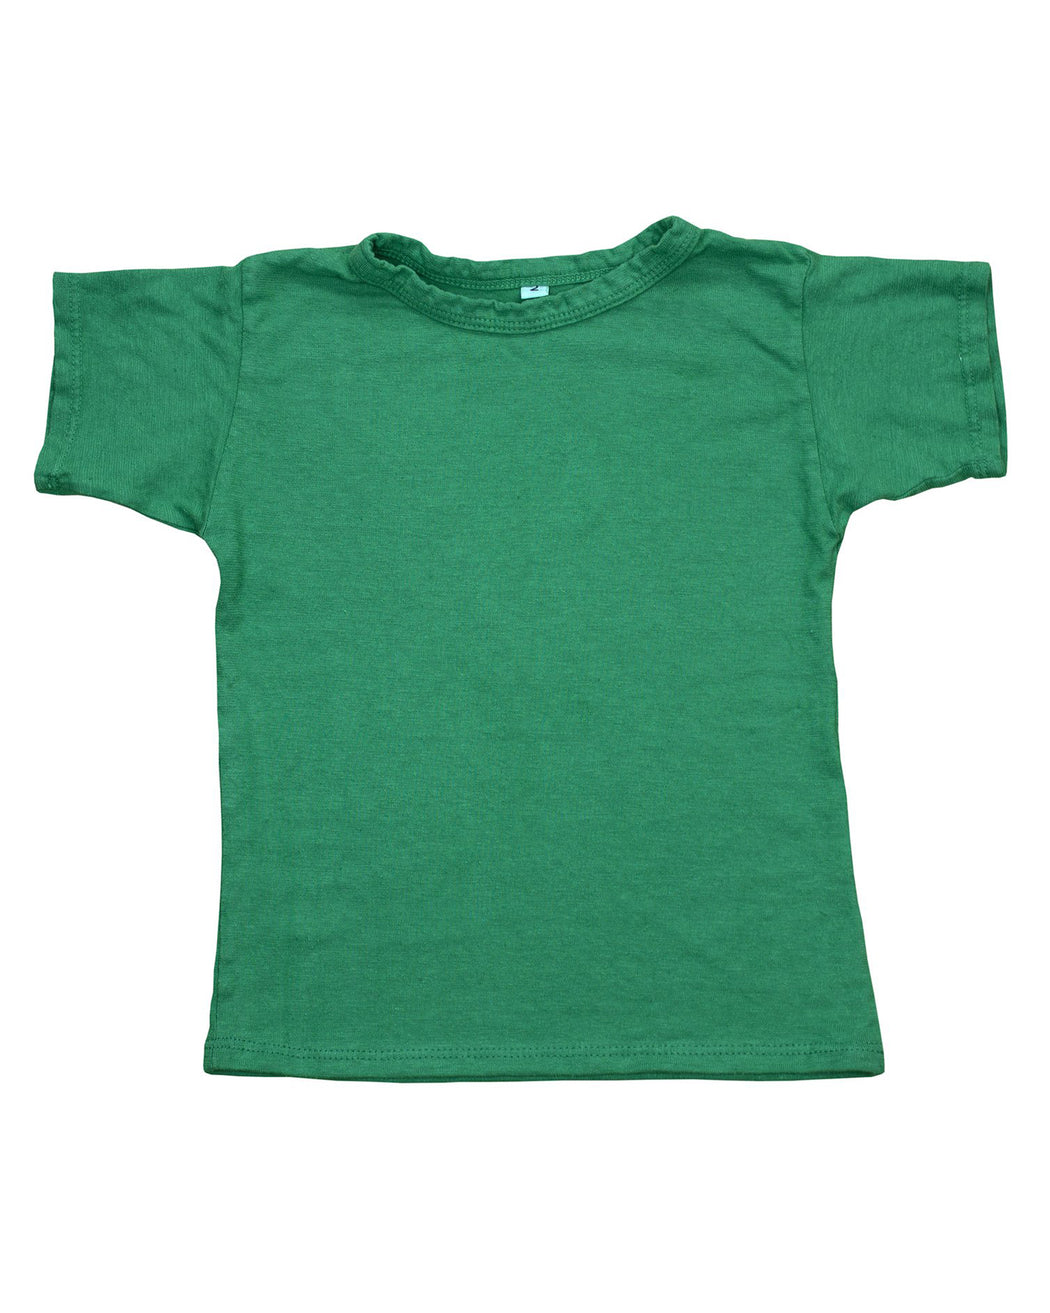 Grom Tee – Assorted Colors